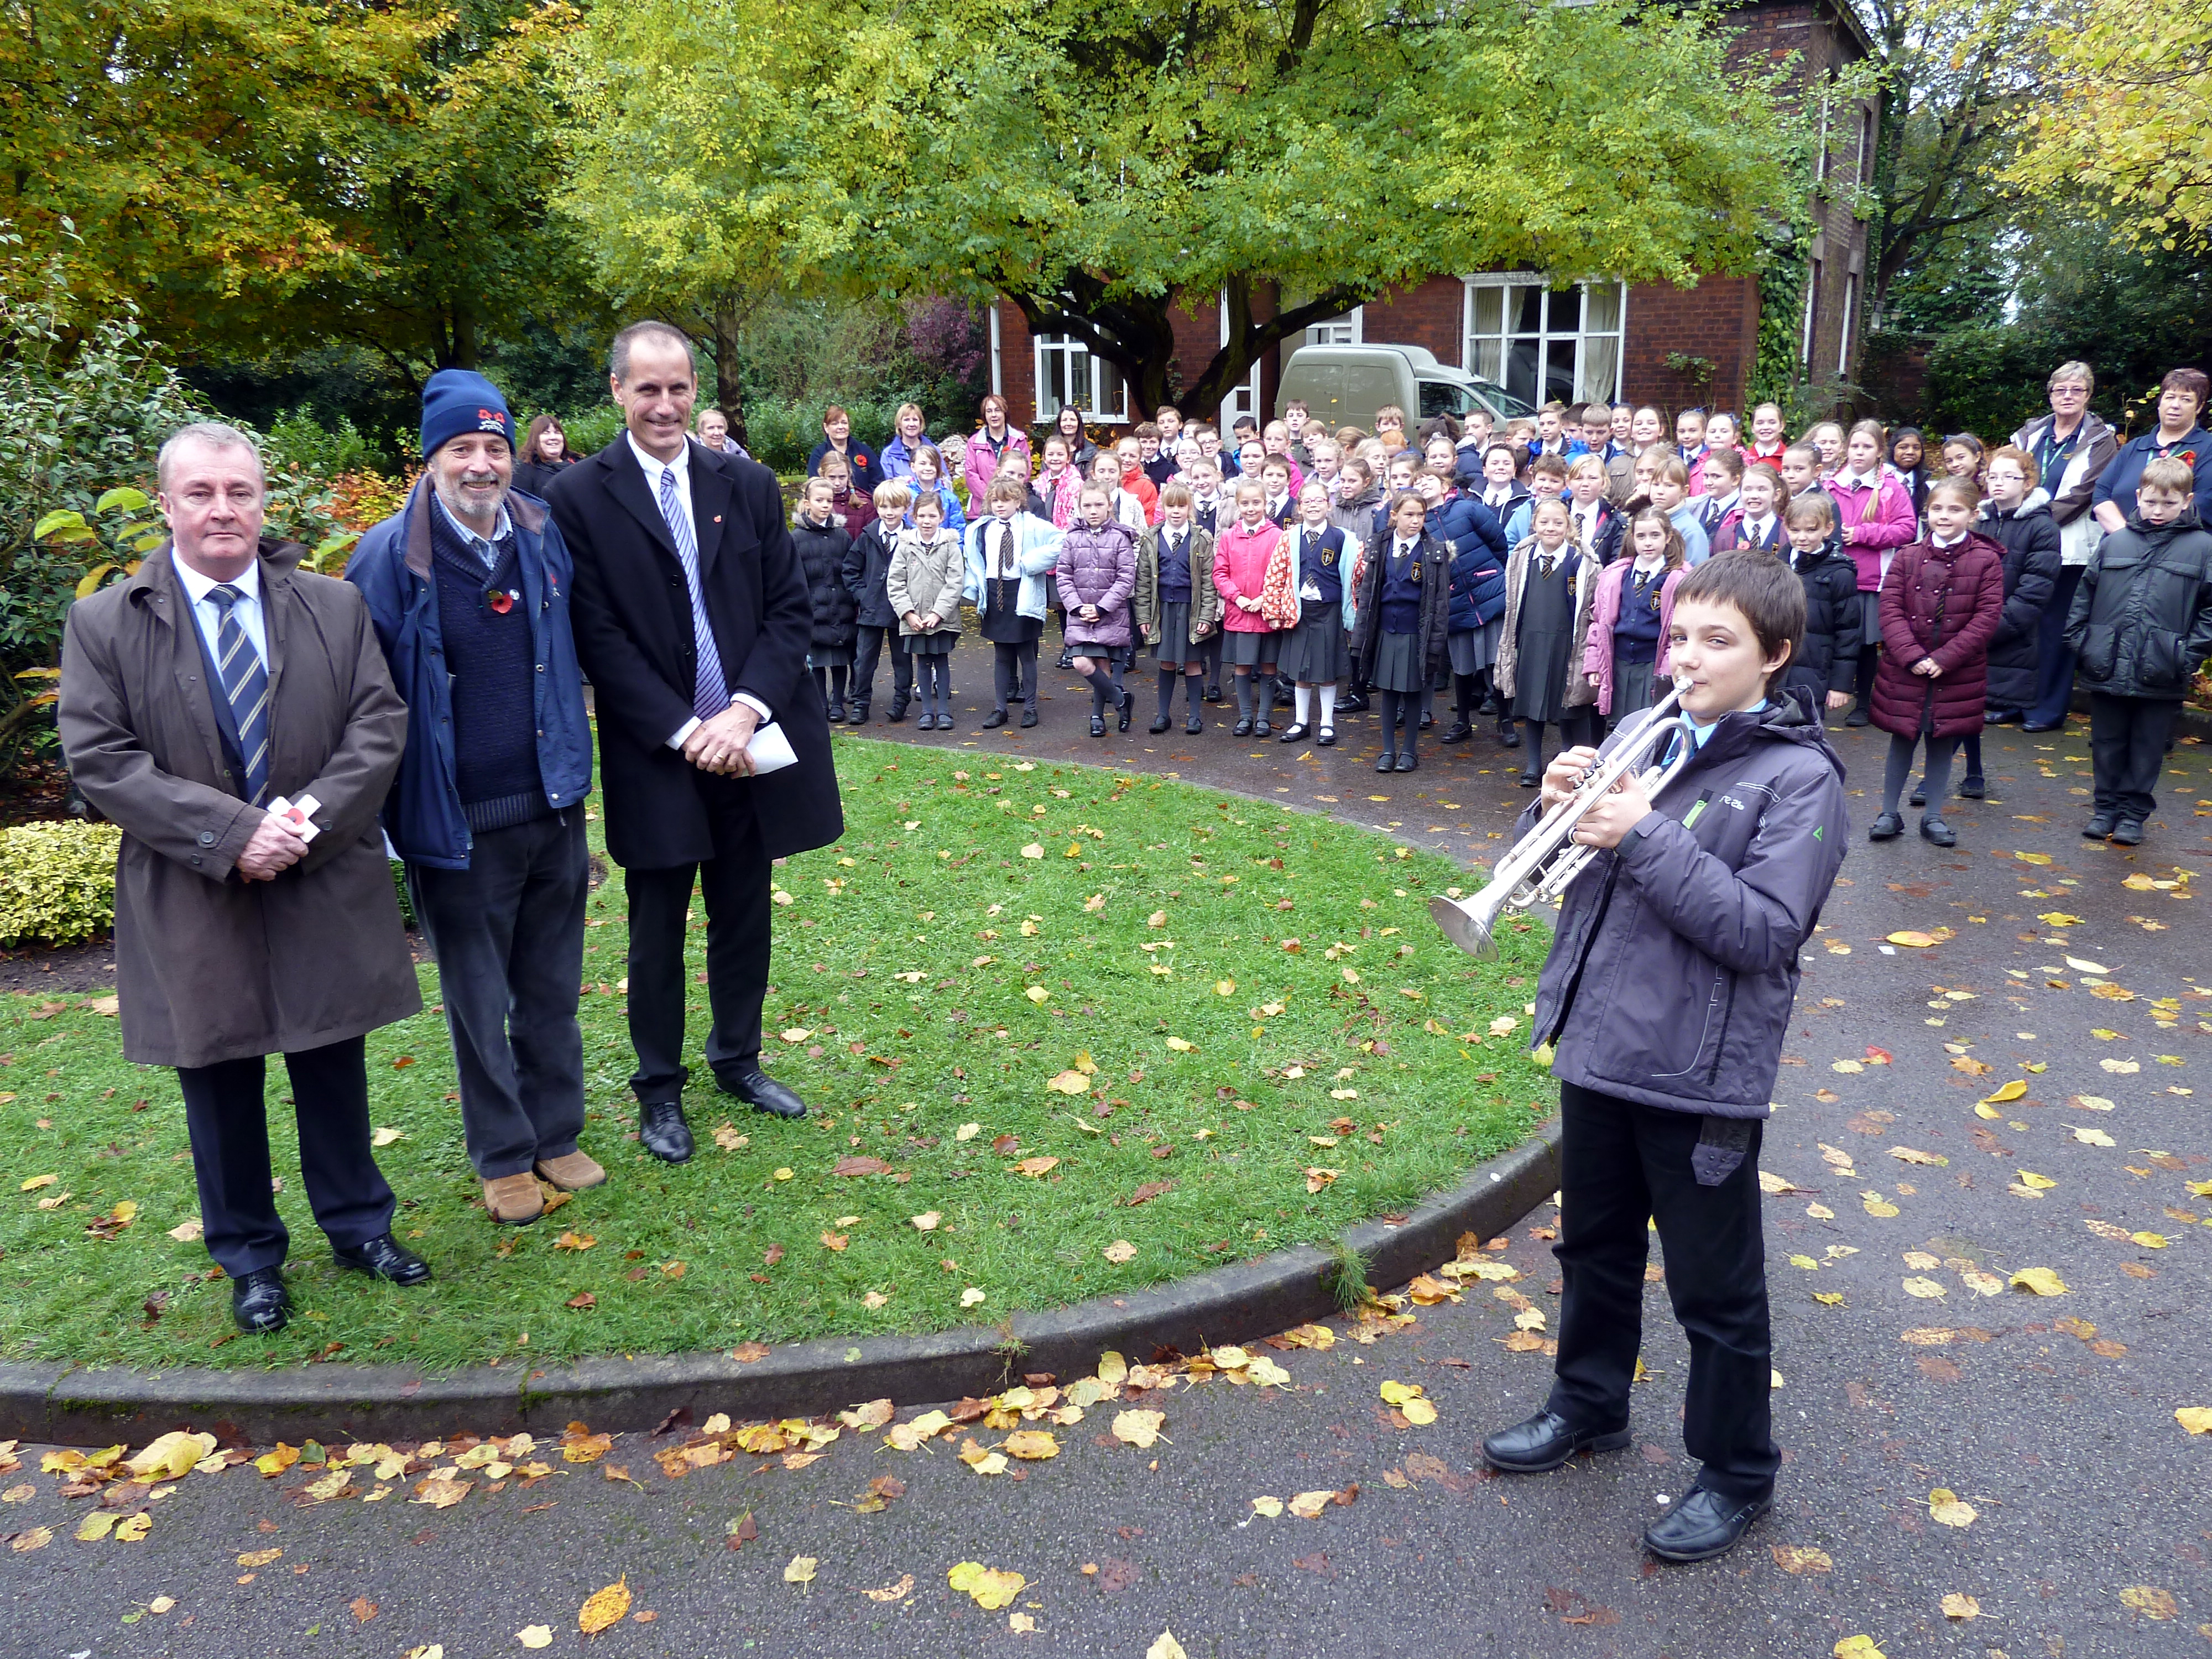 Sefton Central Labour MP Bill Esterson with Maghull Labour Councillor Patrick McKinley, Cllr Bruce Hubbard, St Andrew's trumpet player Joe Fay and pupils at the Maghull Remembrance Day Service.